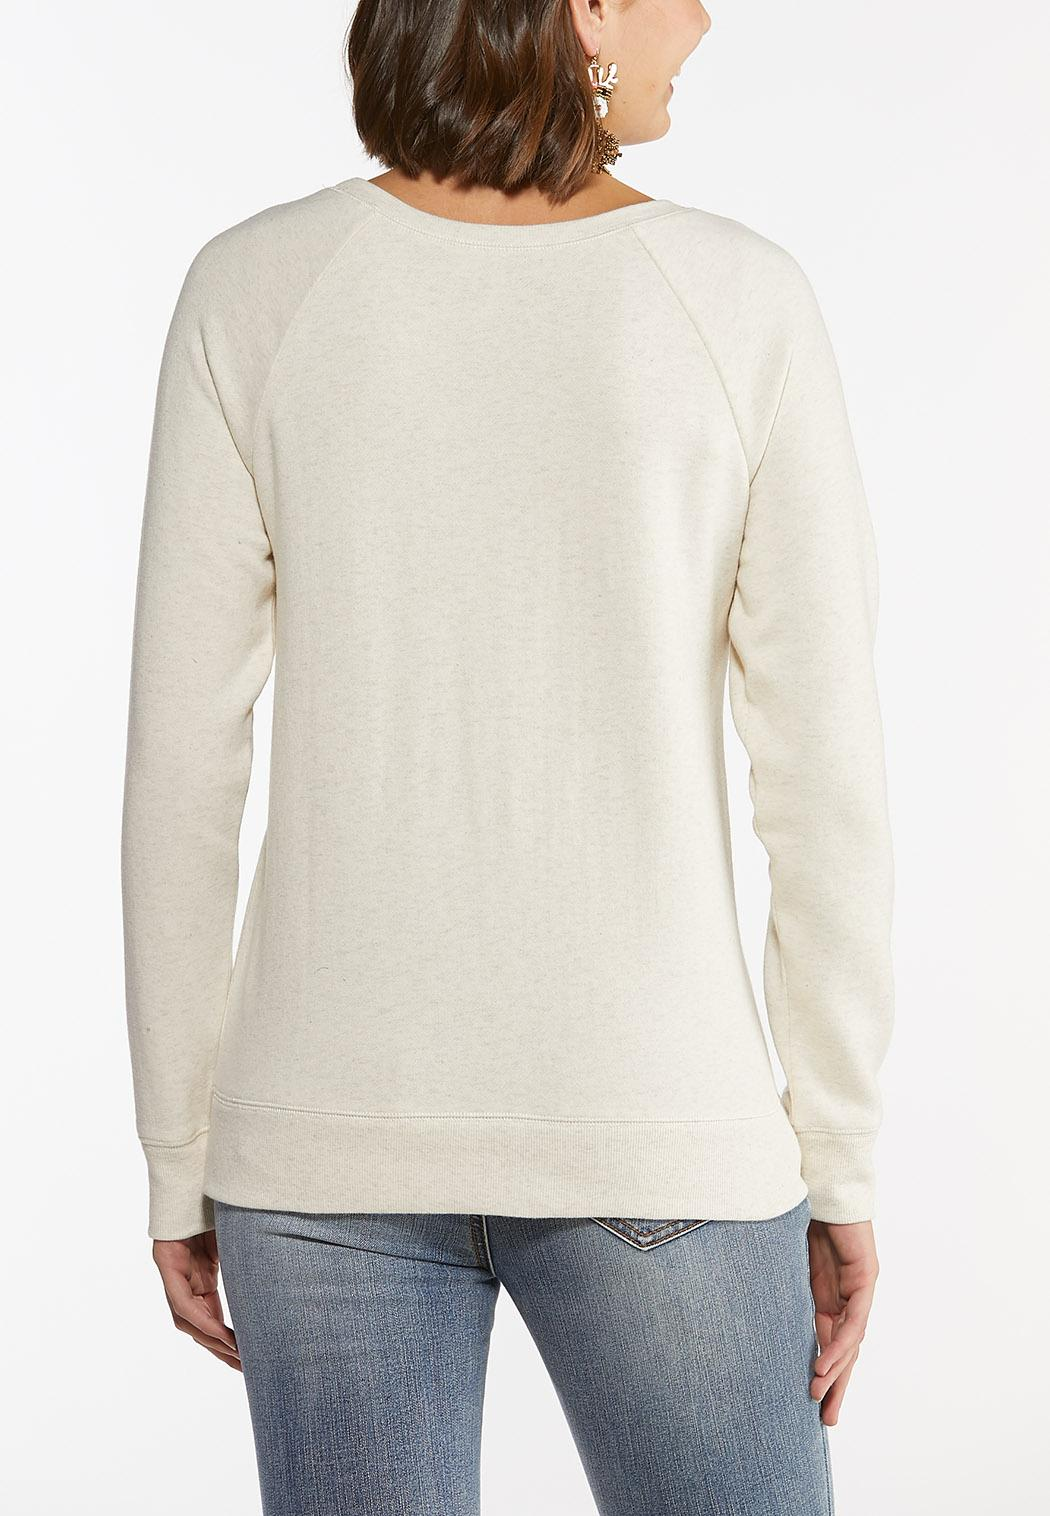 Plus Size All I Want For Christmas Sweatshirt (Item #44447205)